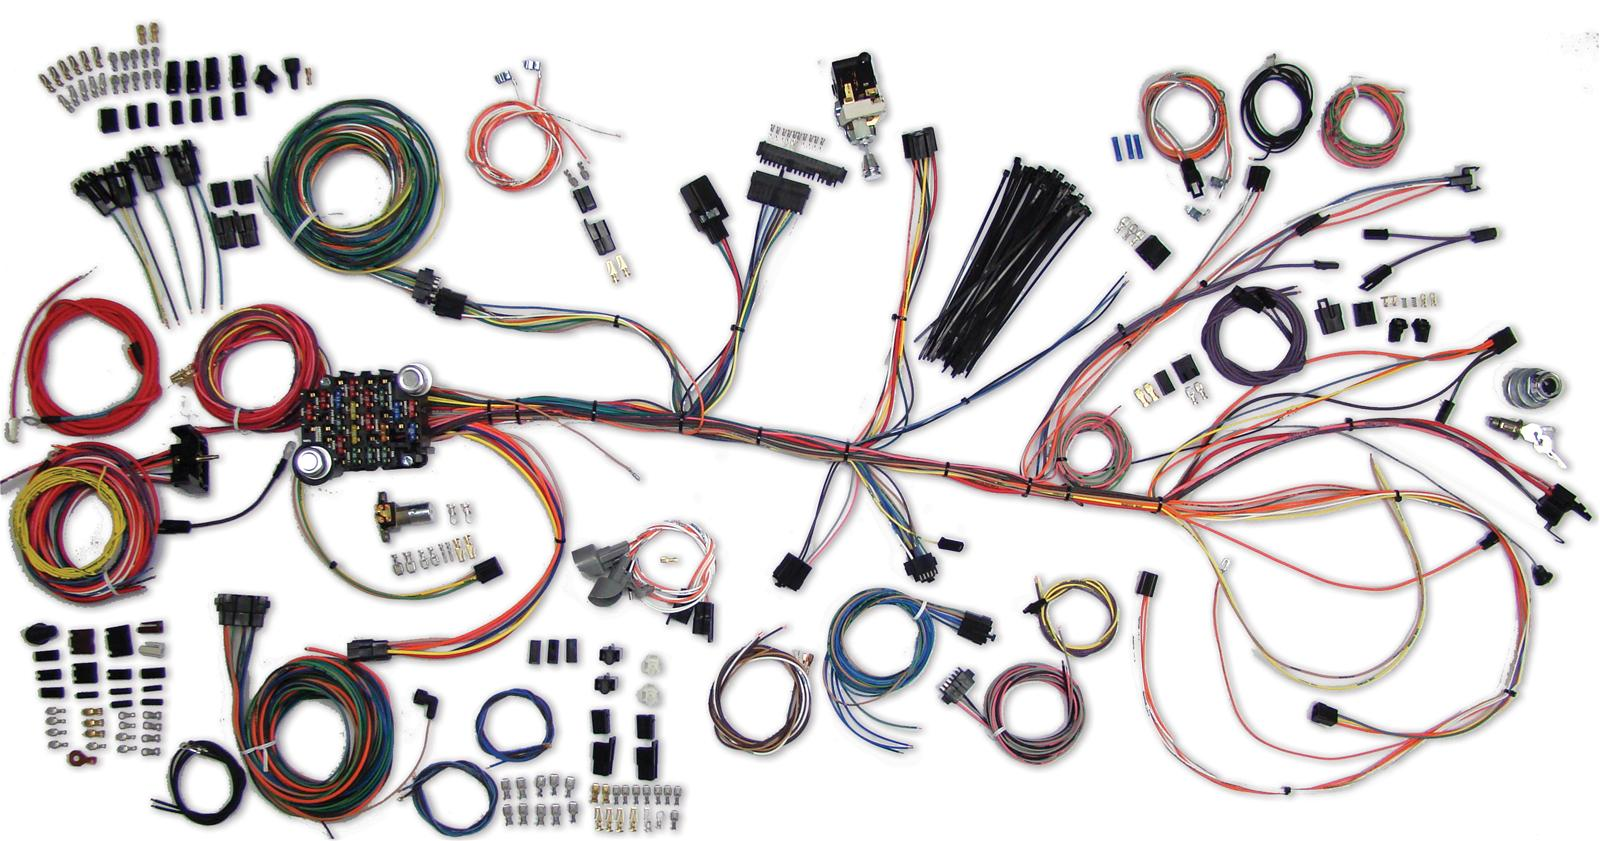 hight resolution of american autowire classic update series wiring harness kits 500981 free shipping on orders over 99 at summit racing